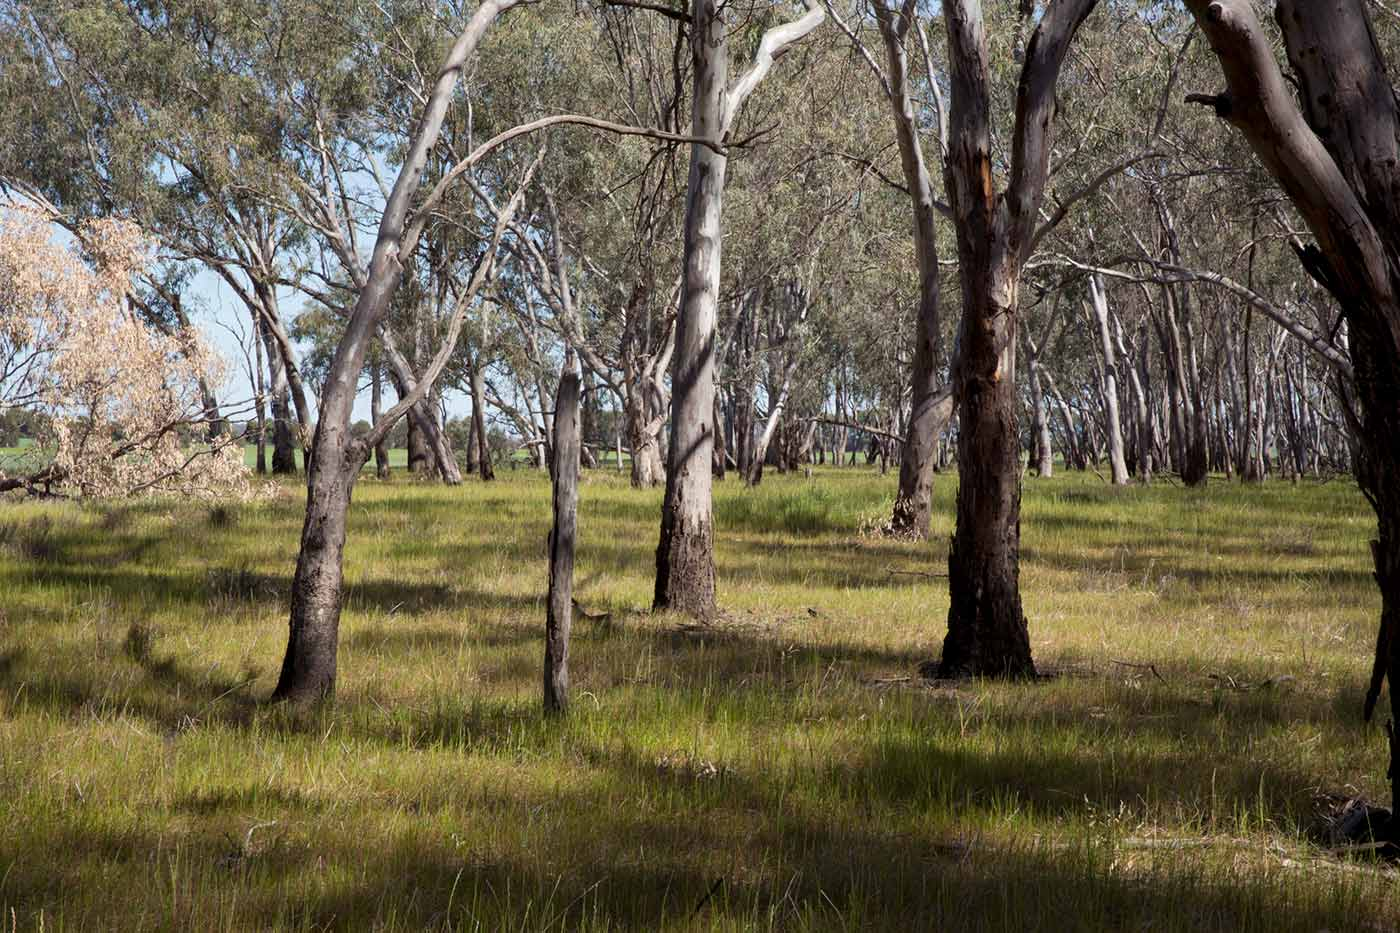 A grassed area with an abundance of gum trees.